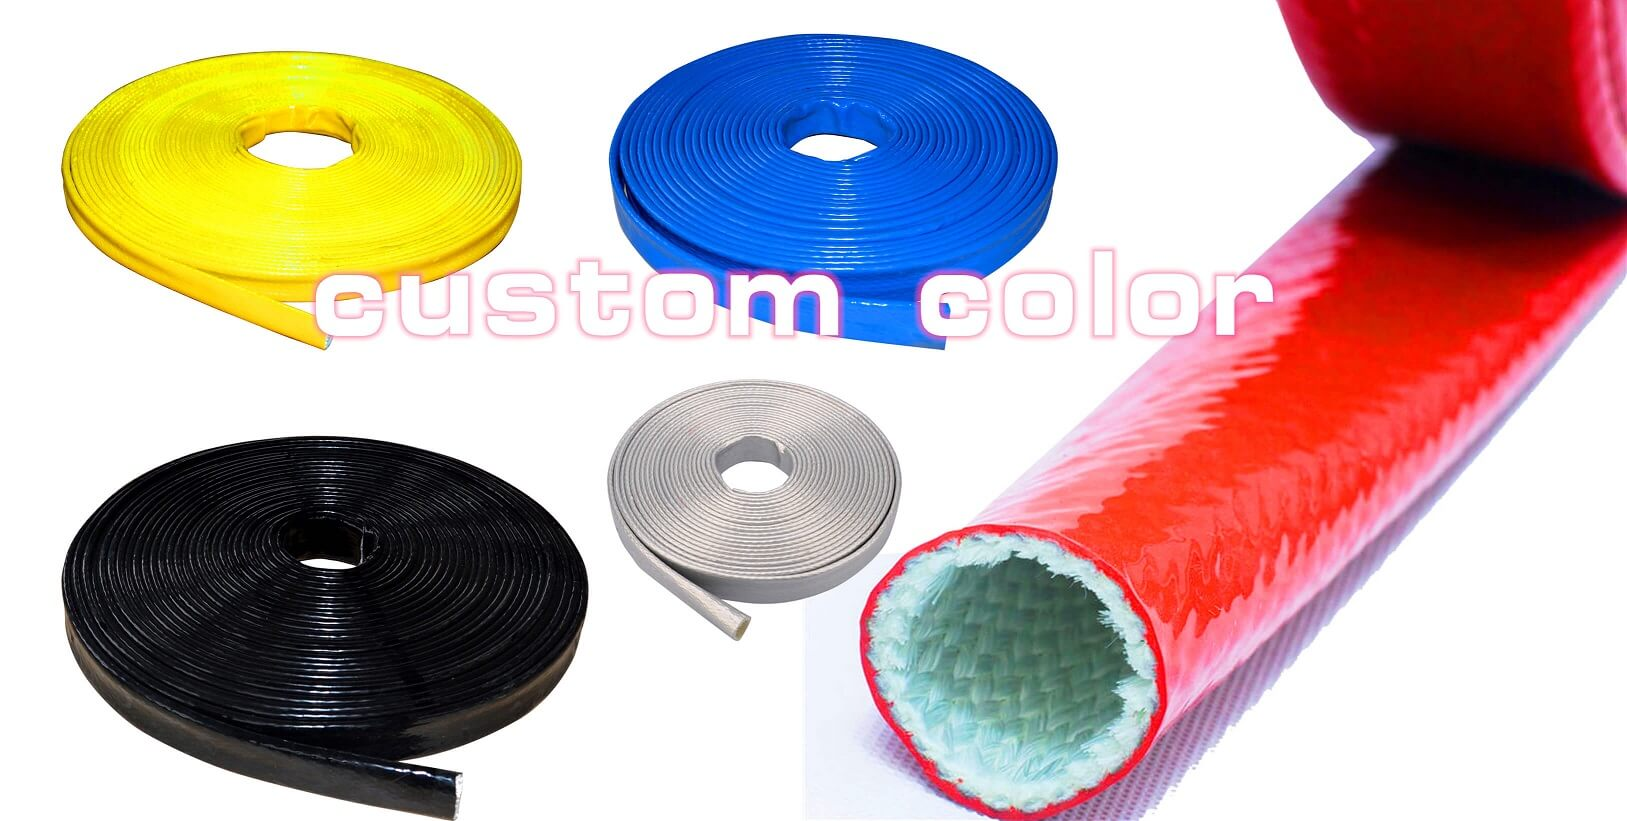 Fireproof/Anti-fire Fiberglass Insulation Sleeving